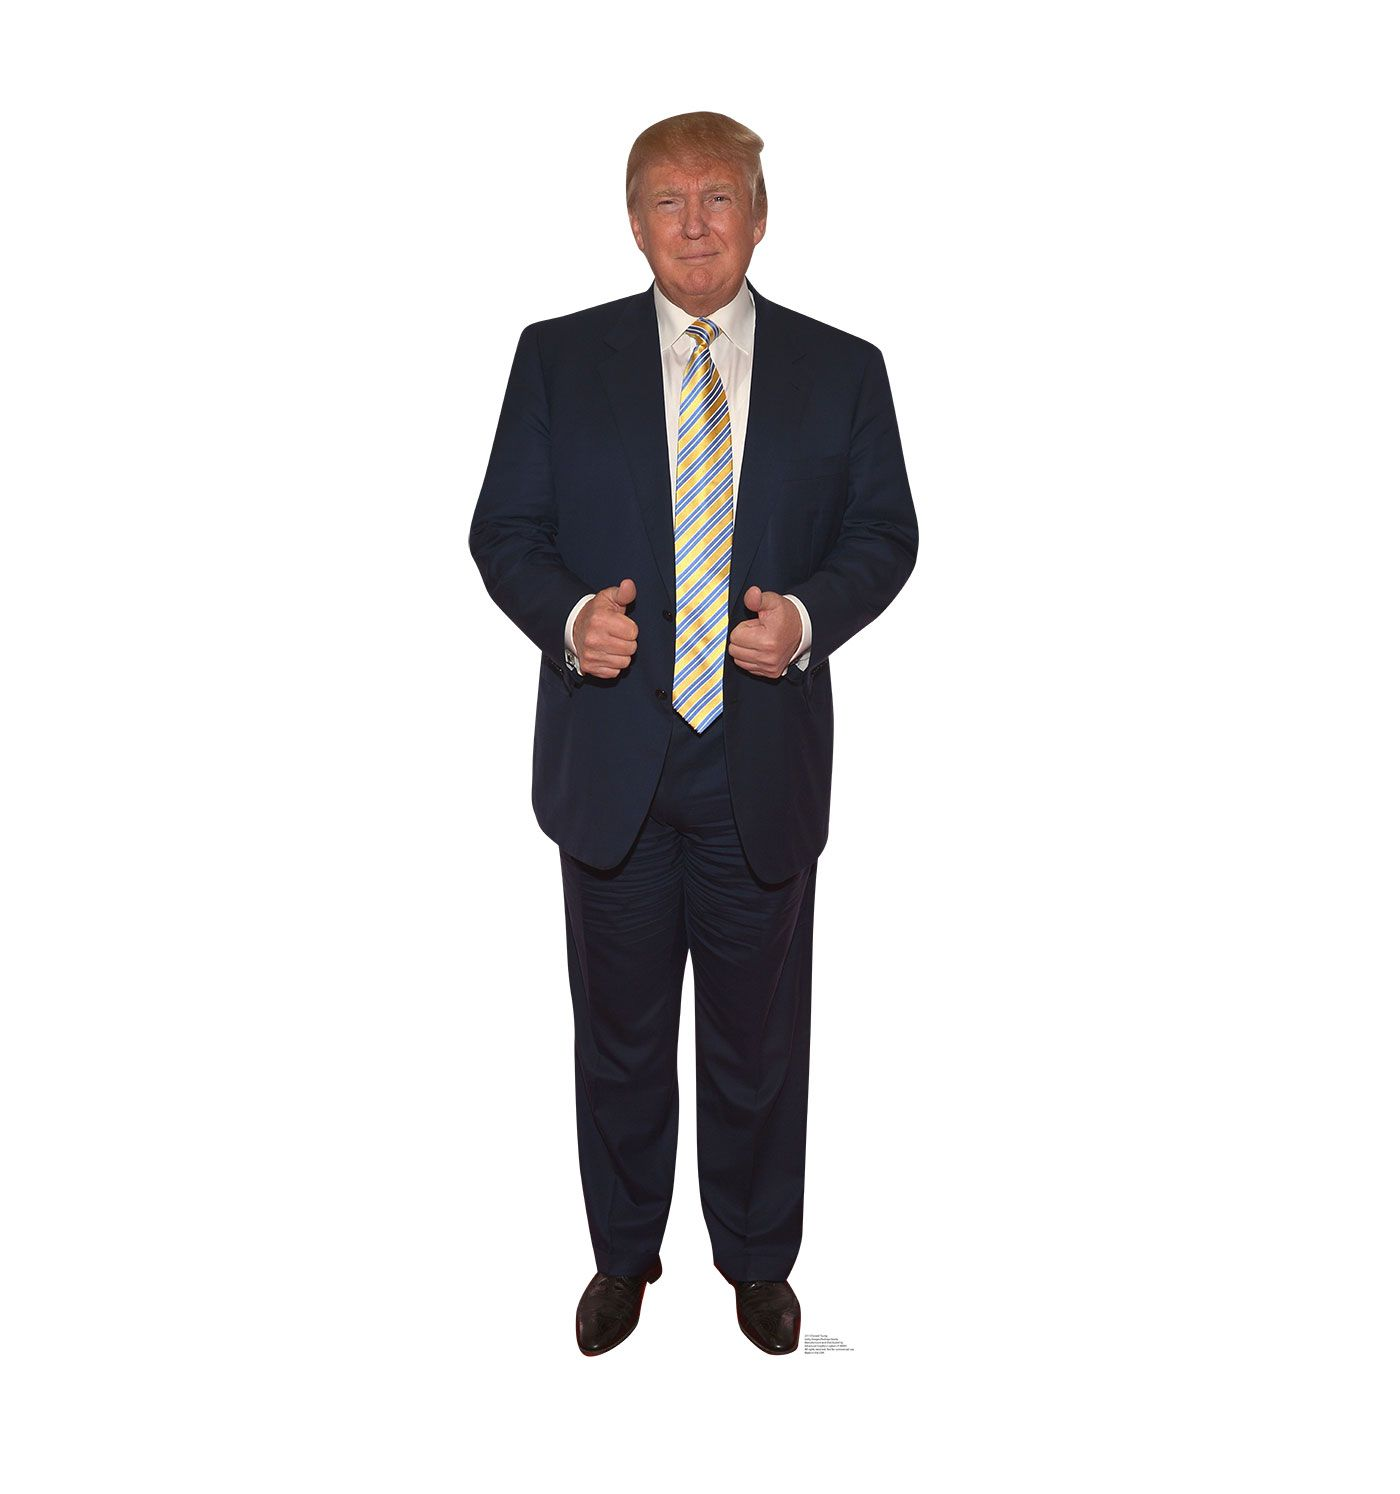 """eb9ed6a7ec873 Show your Trump pride and help """"make America great again"""" with a lifesize  cardboard cutout of your favorite Presidential Candidate today!"""